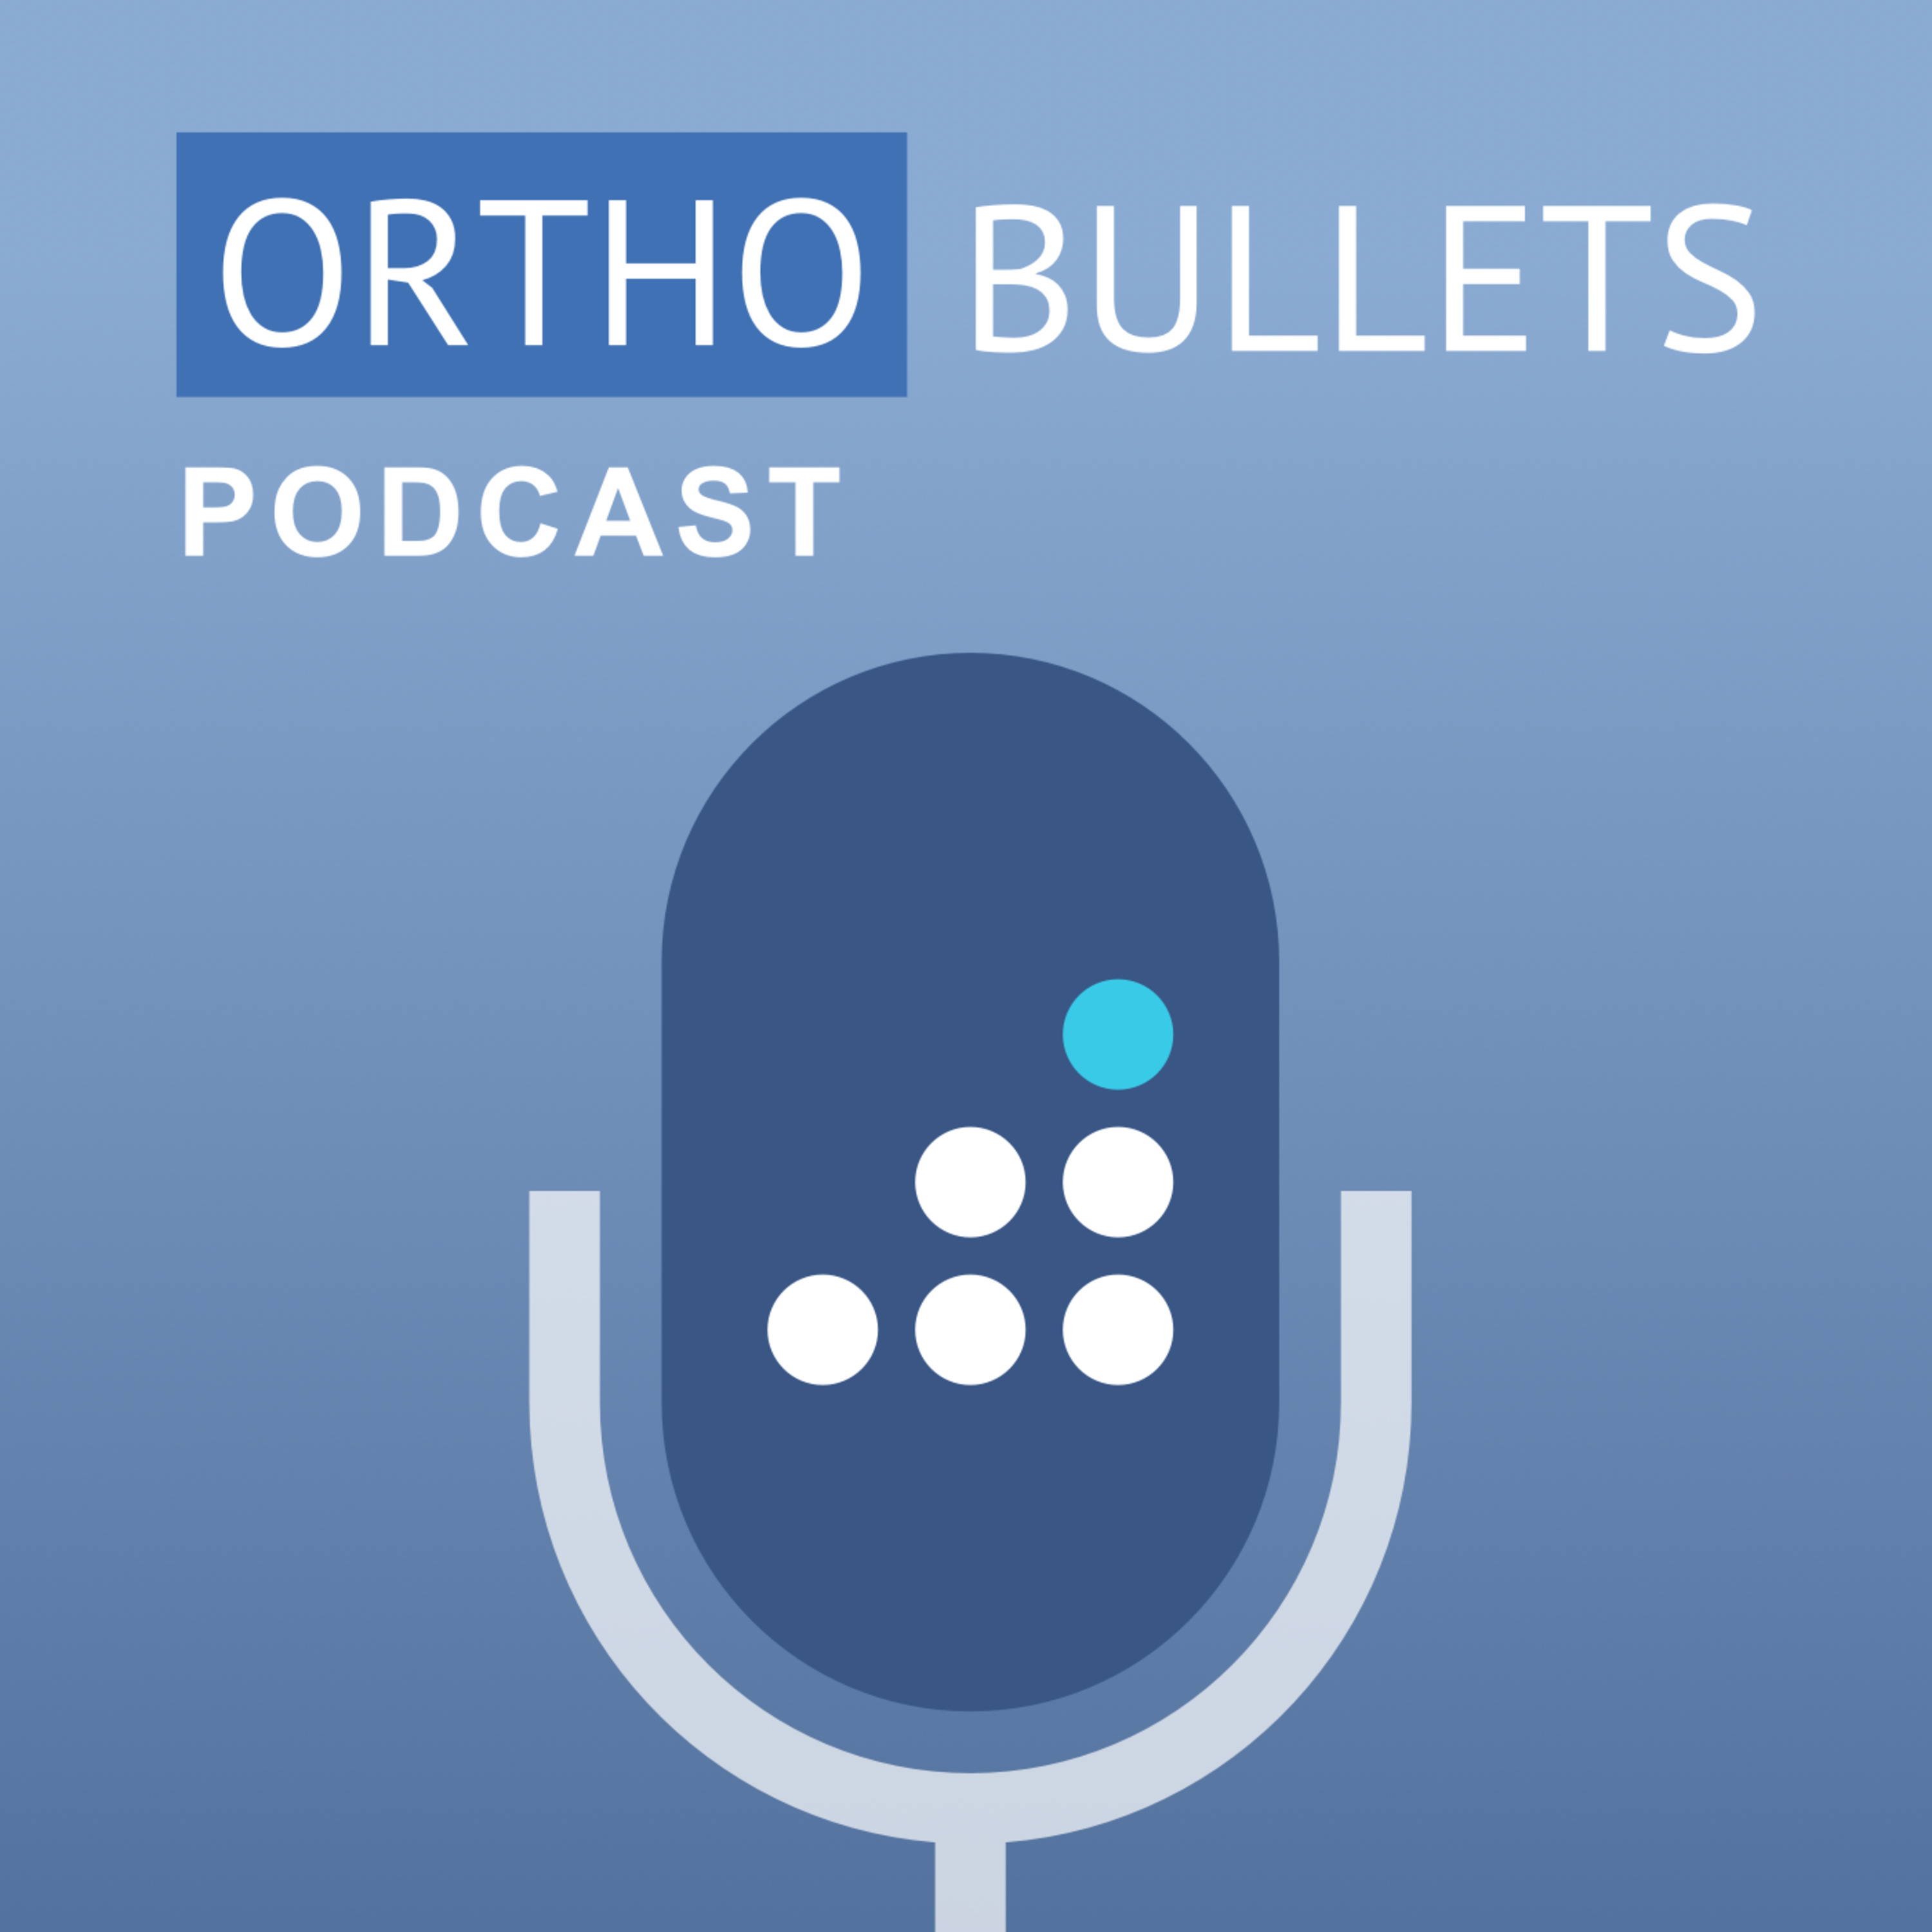 Best Episodes of The Orthobullets Podcast